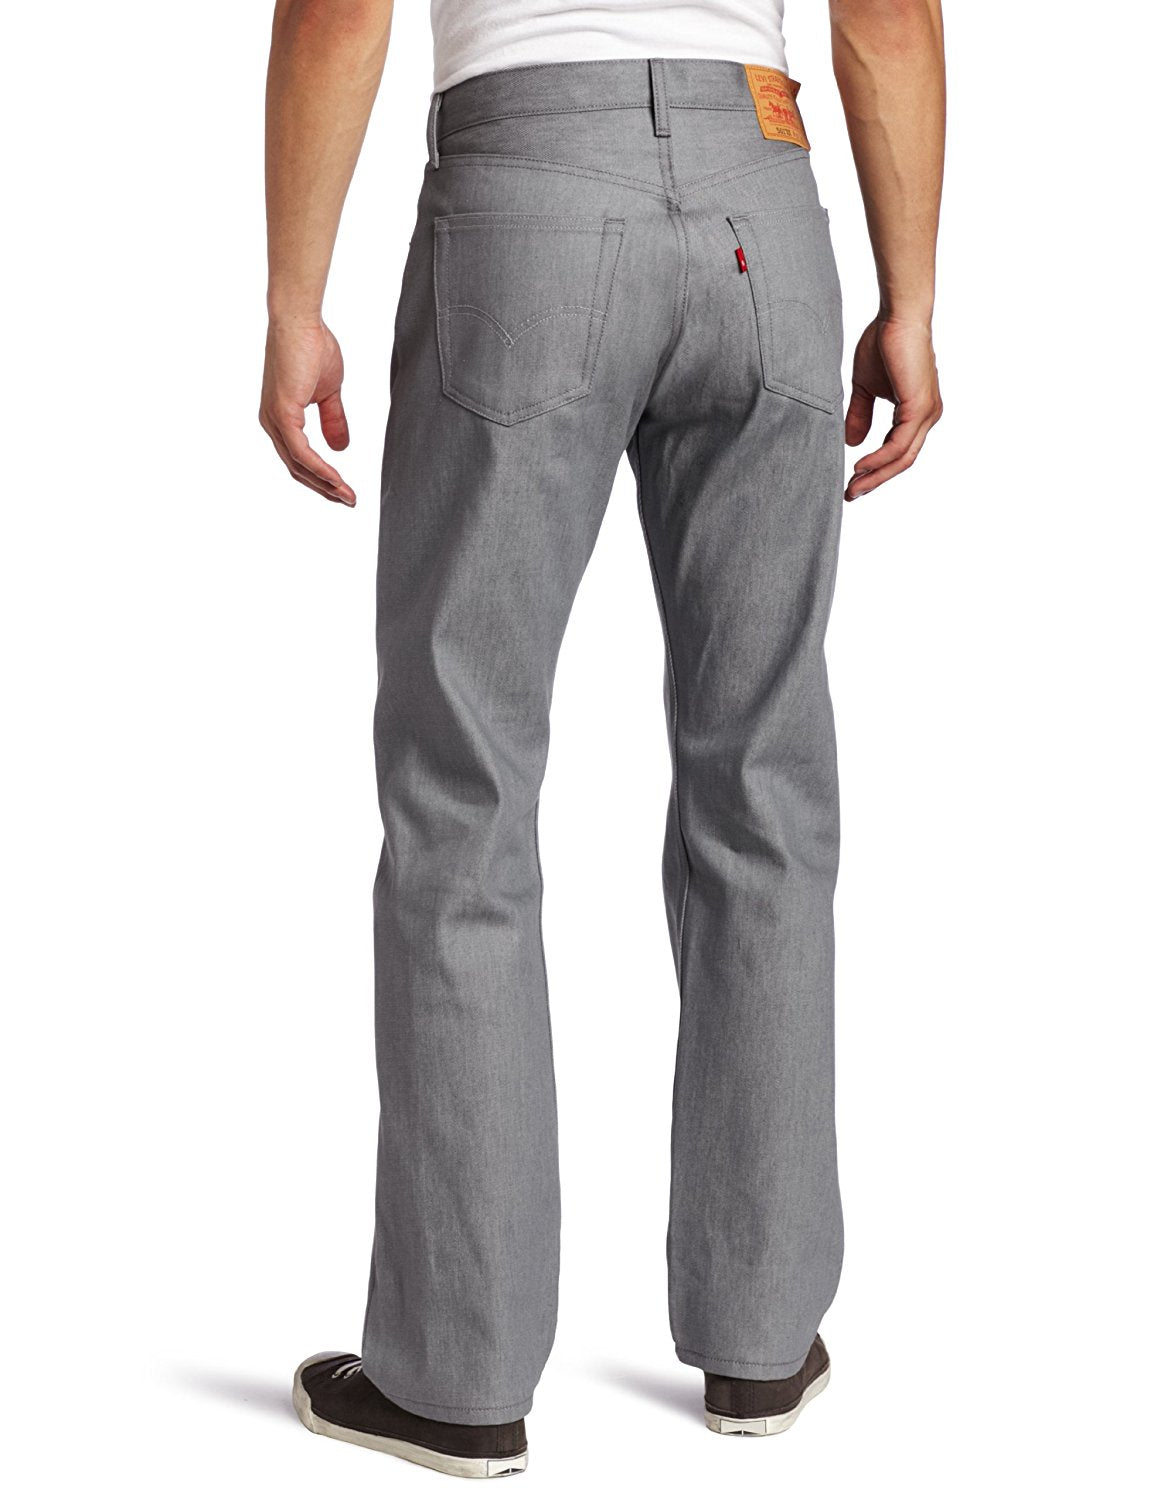 5cf56f6bffe Levi's Men's 501 Original Shrink-to-Fit Jeans – Imax Fashions